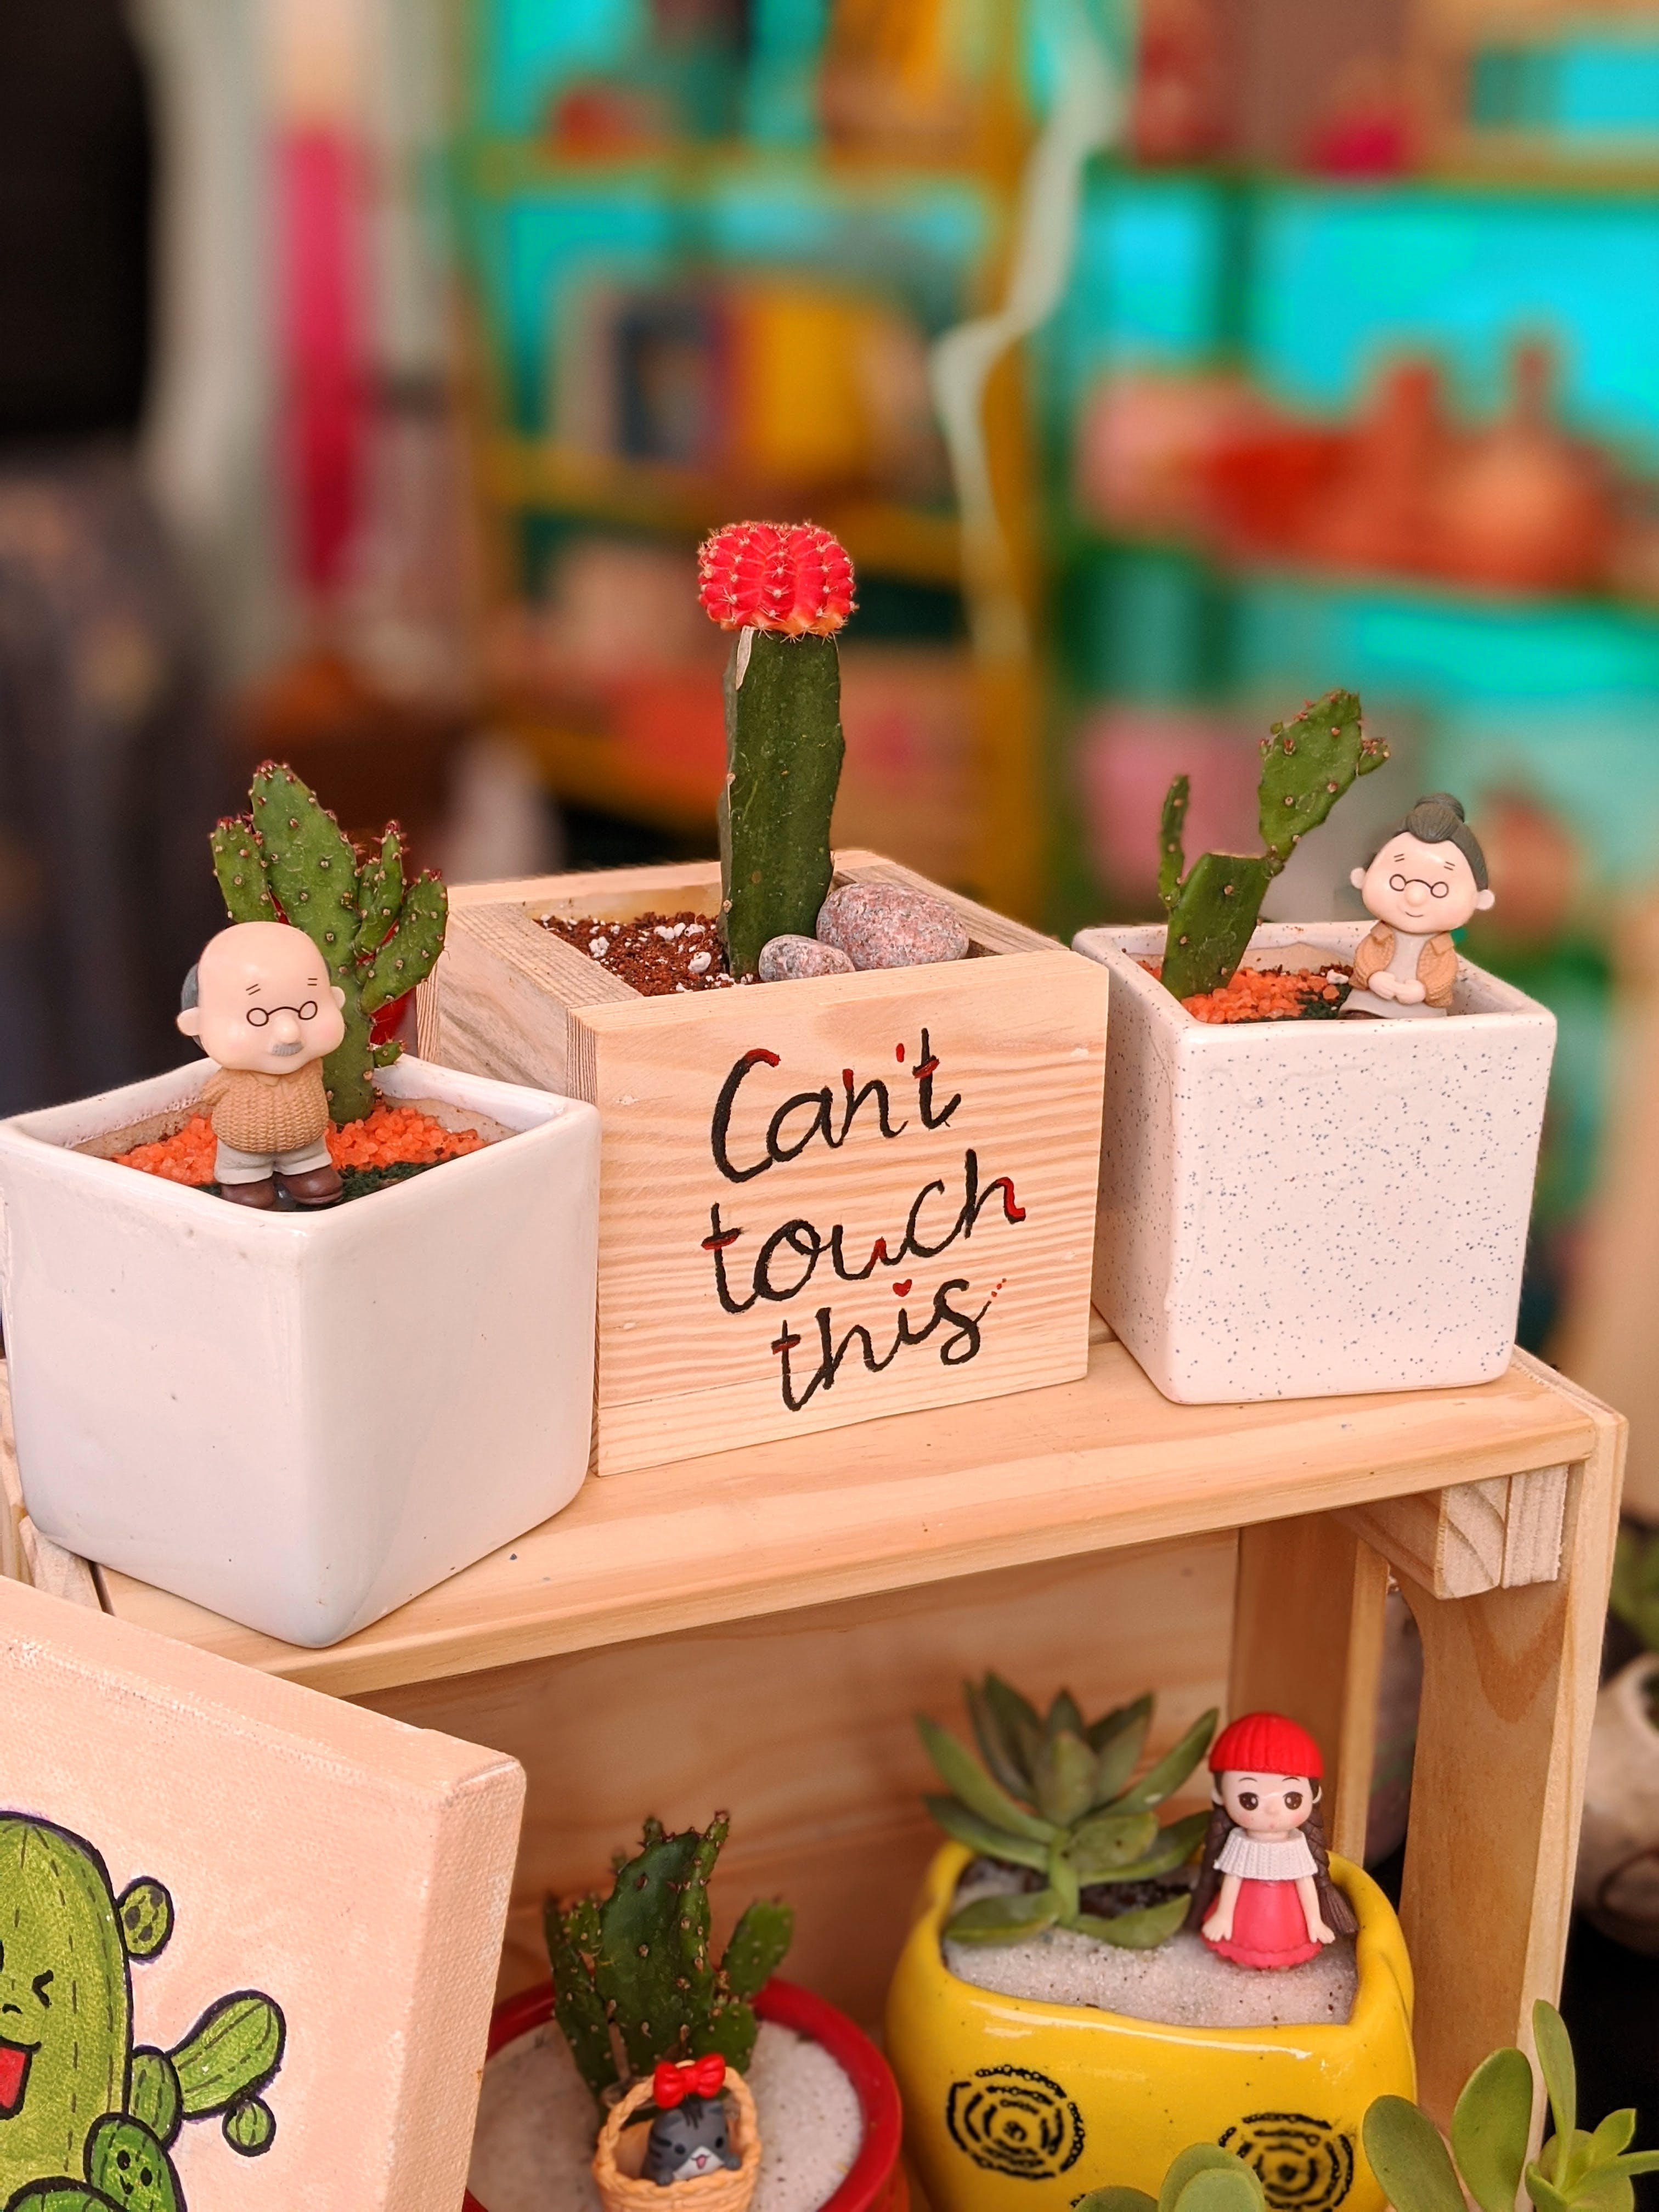 Adorable Miniature Gardens To Quirky Gifts: This Local Brand Is Lit AF